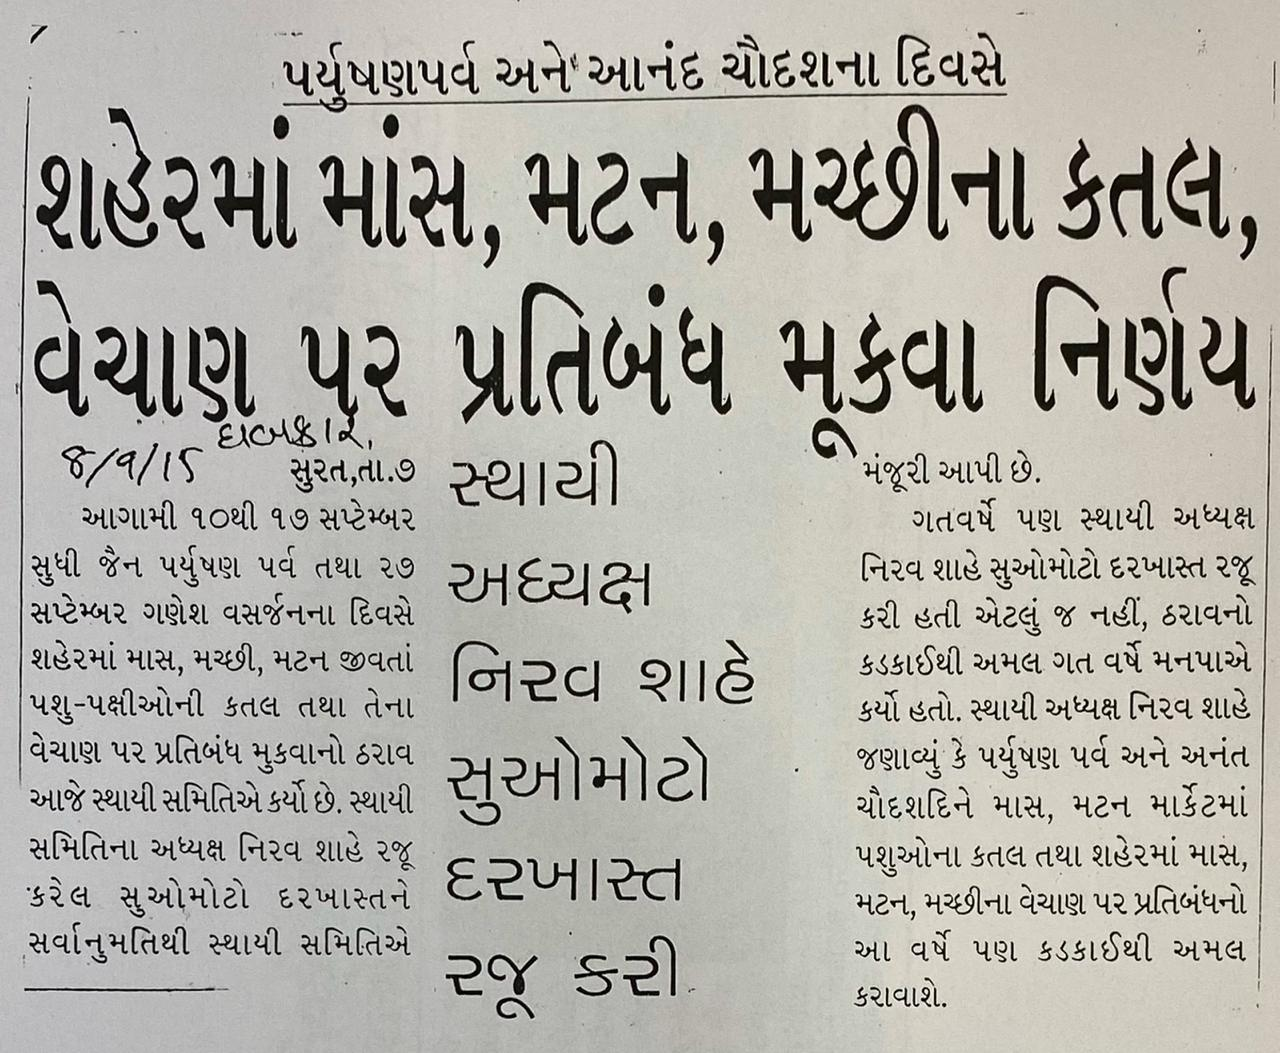 On the occasion of Jain paryushan, selling of meat is banned by Nirav Shah